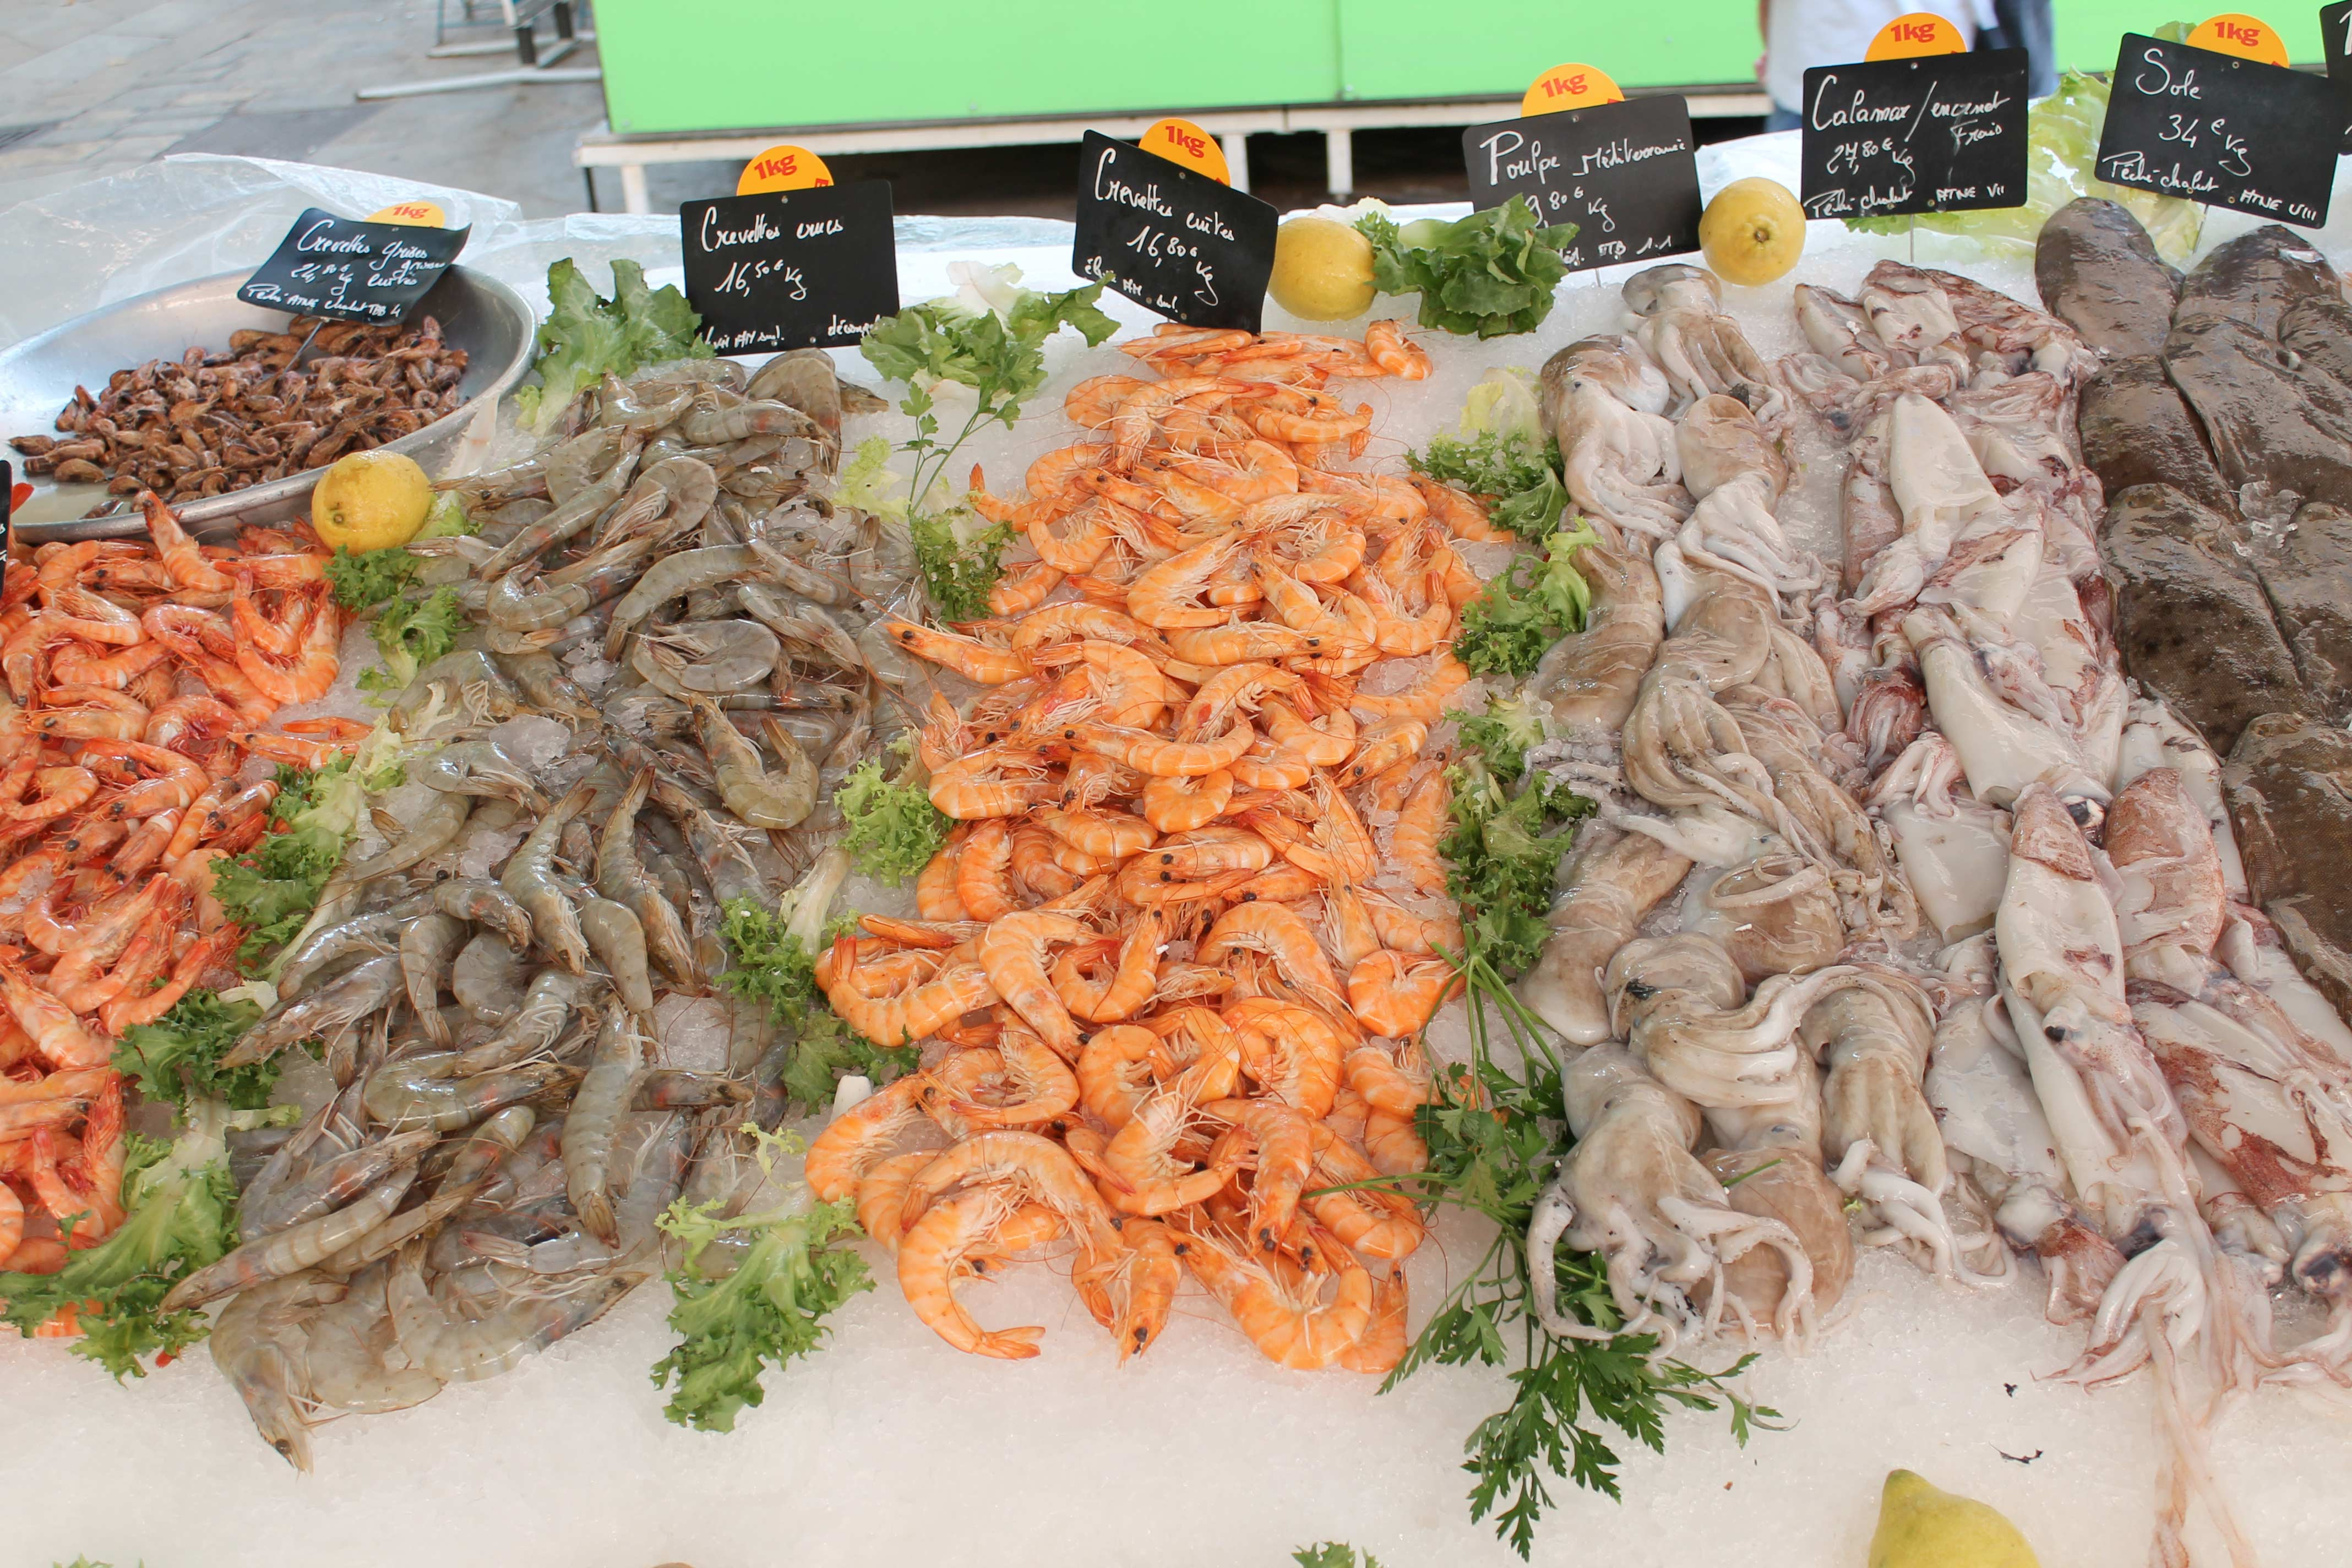 Shore excursion, seafood stall, Aix en Provence